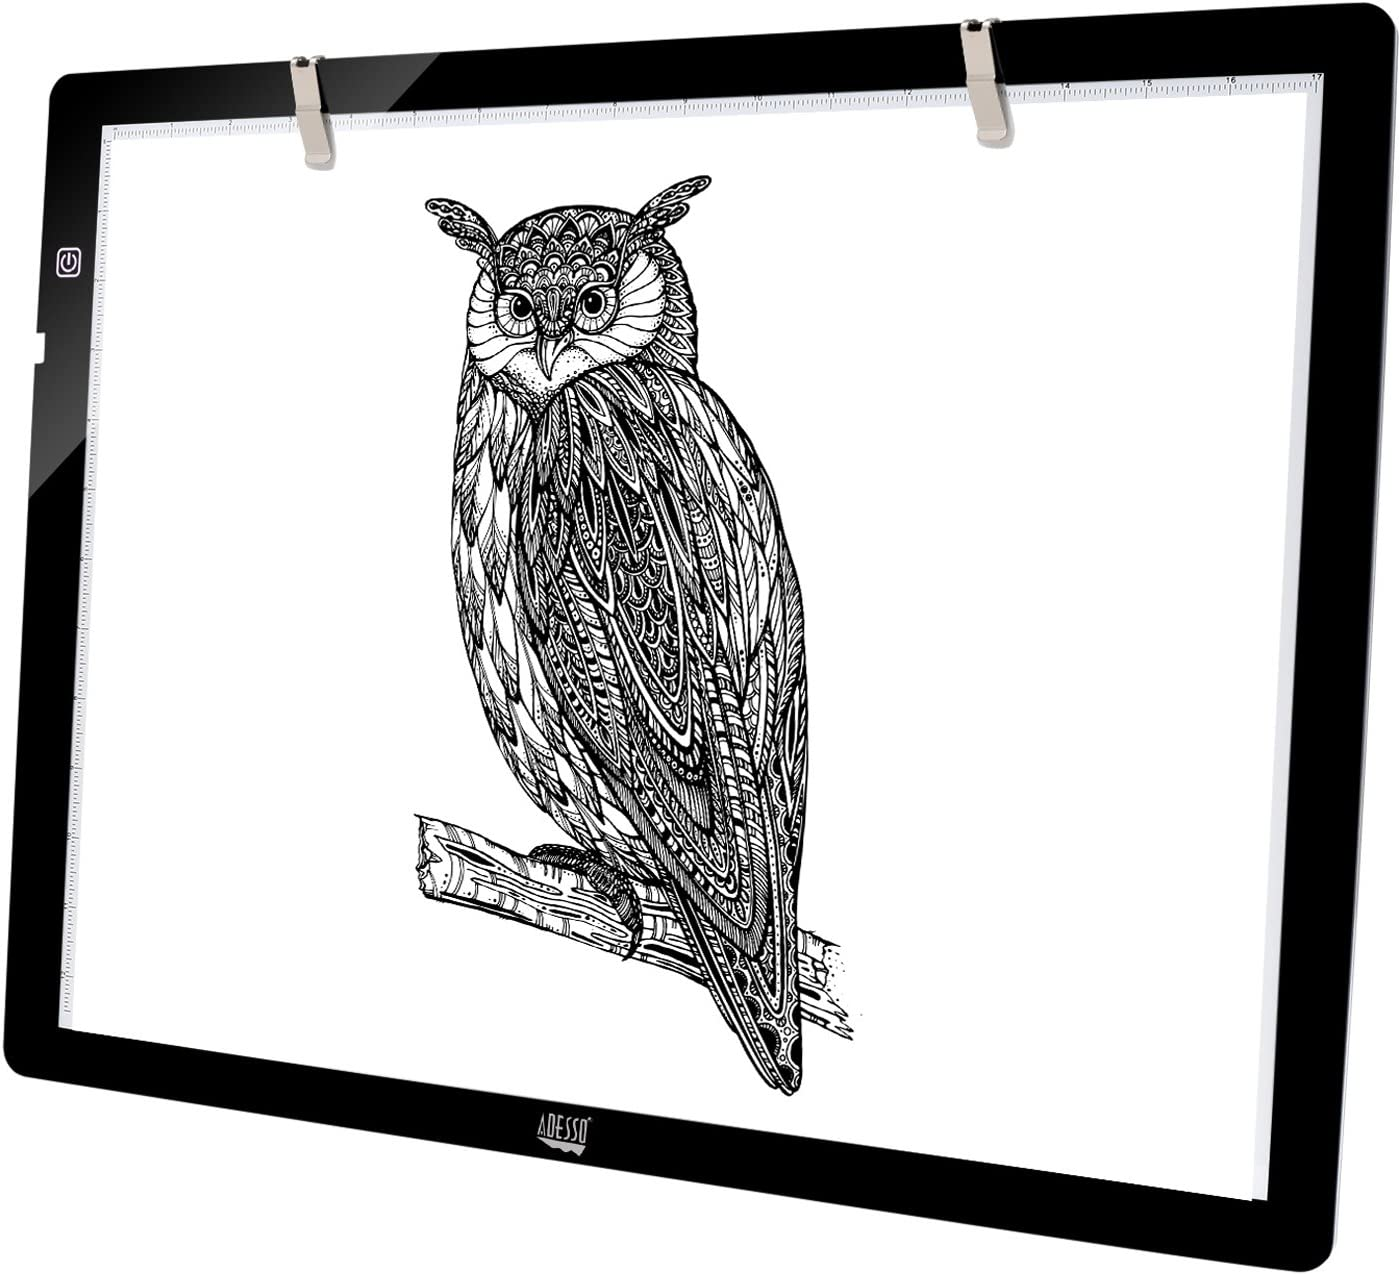 """Adesso CyberPad P2 12"""" x 7"""" LED Artcraft Tracing Light Pad/Box Artists Drawing Sketching X-ray Viewing Black, CYBERPAD_P2"""